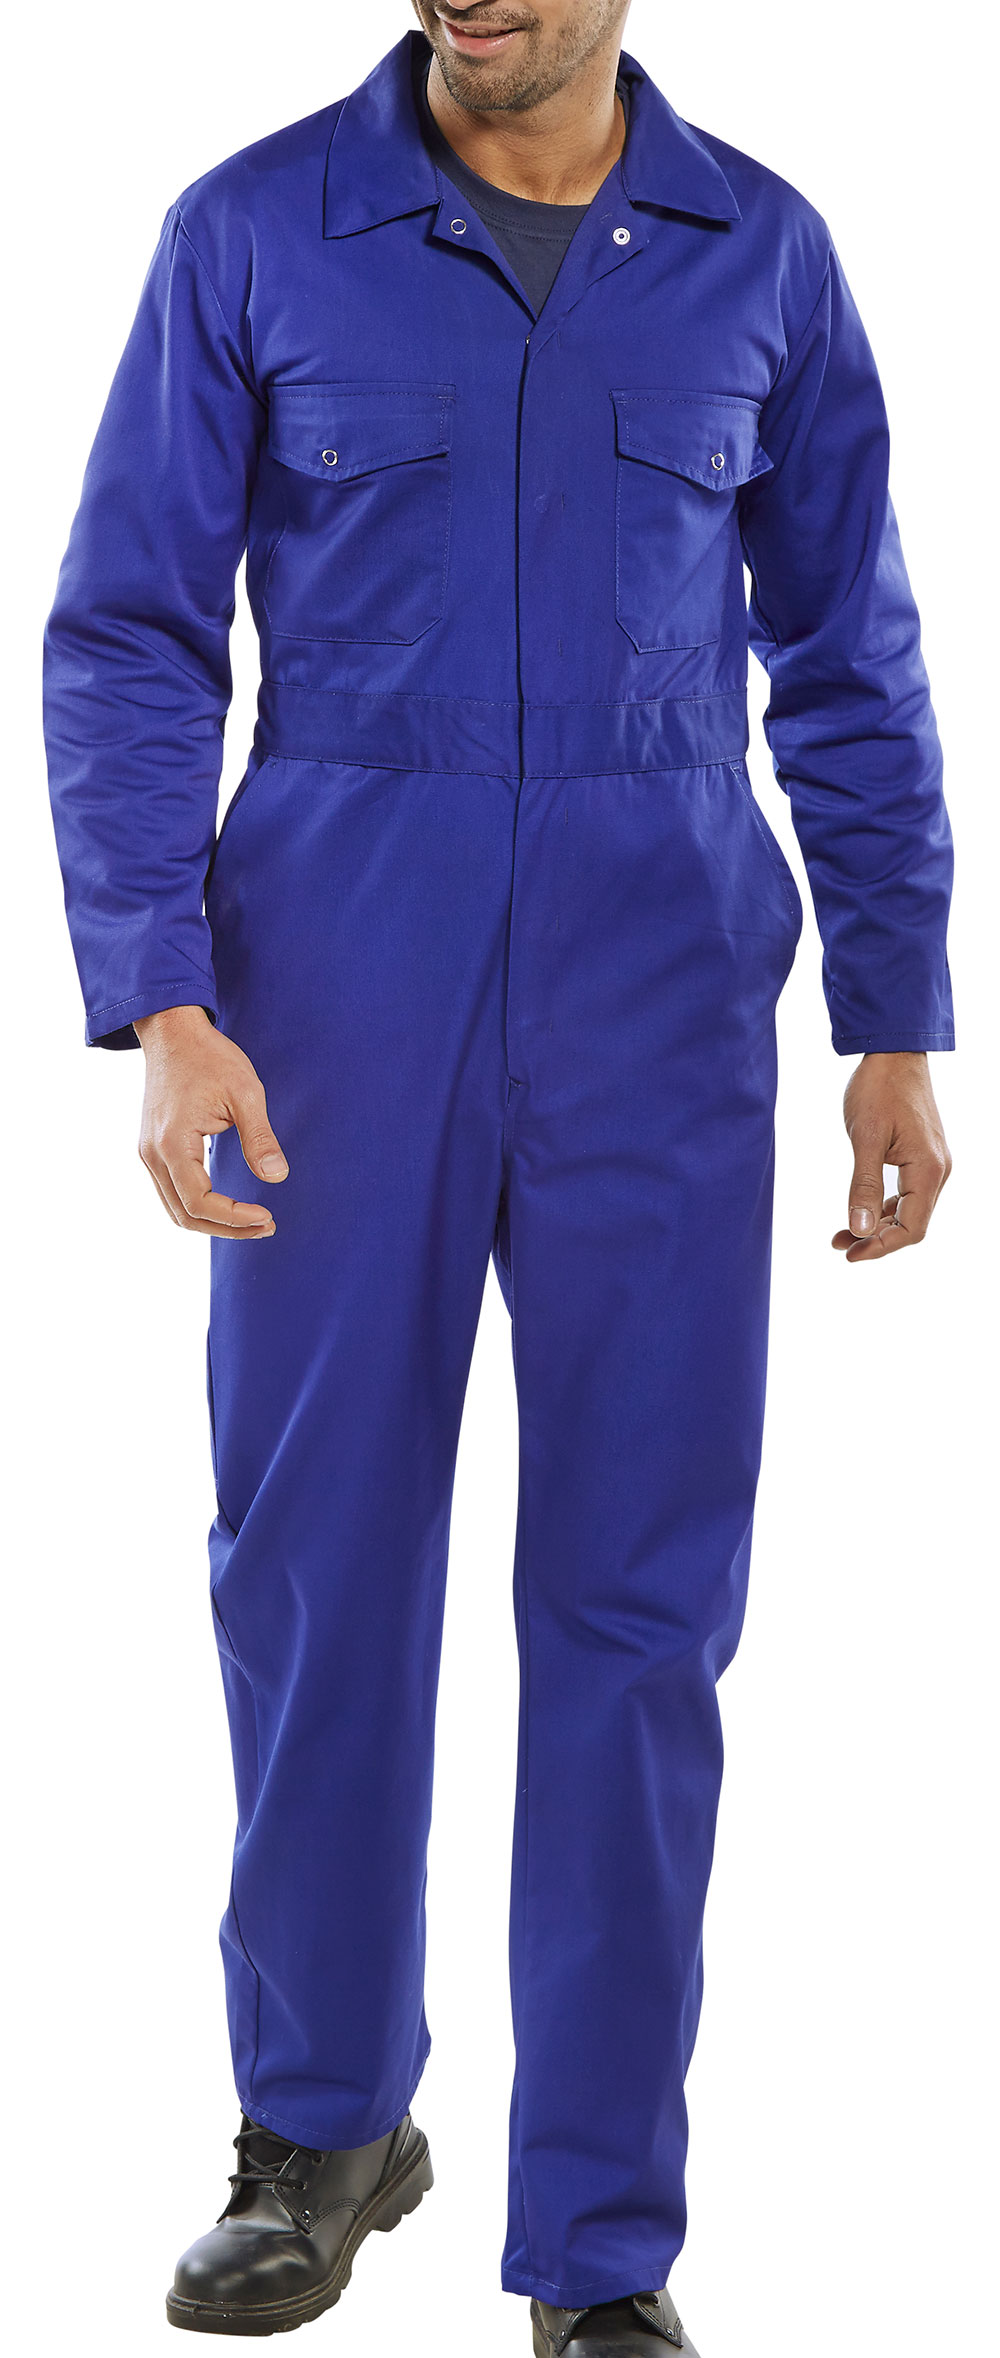 CLICK BOILERSUIT - PCBS